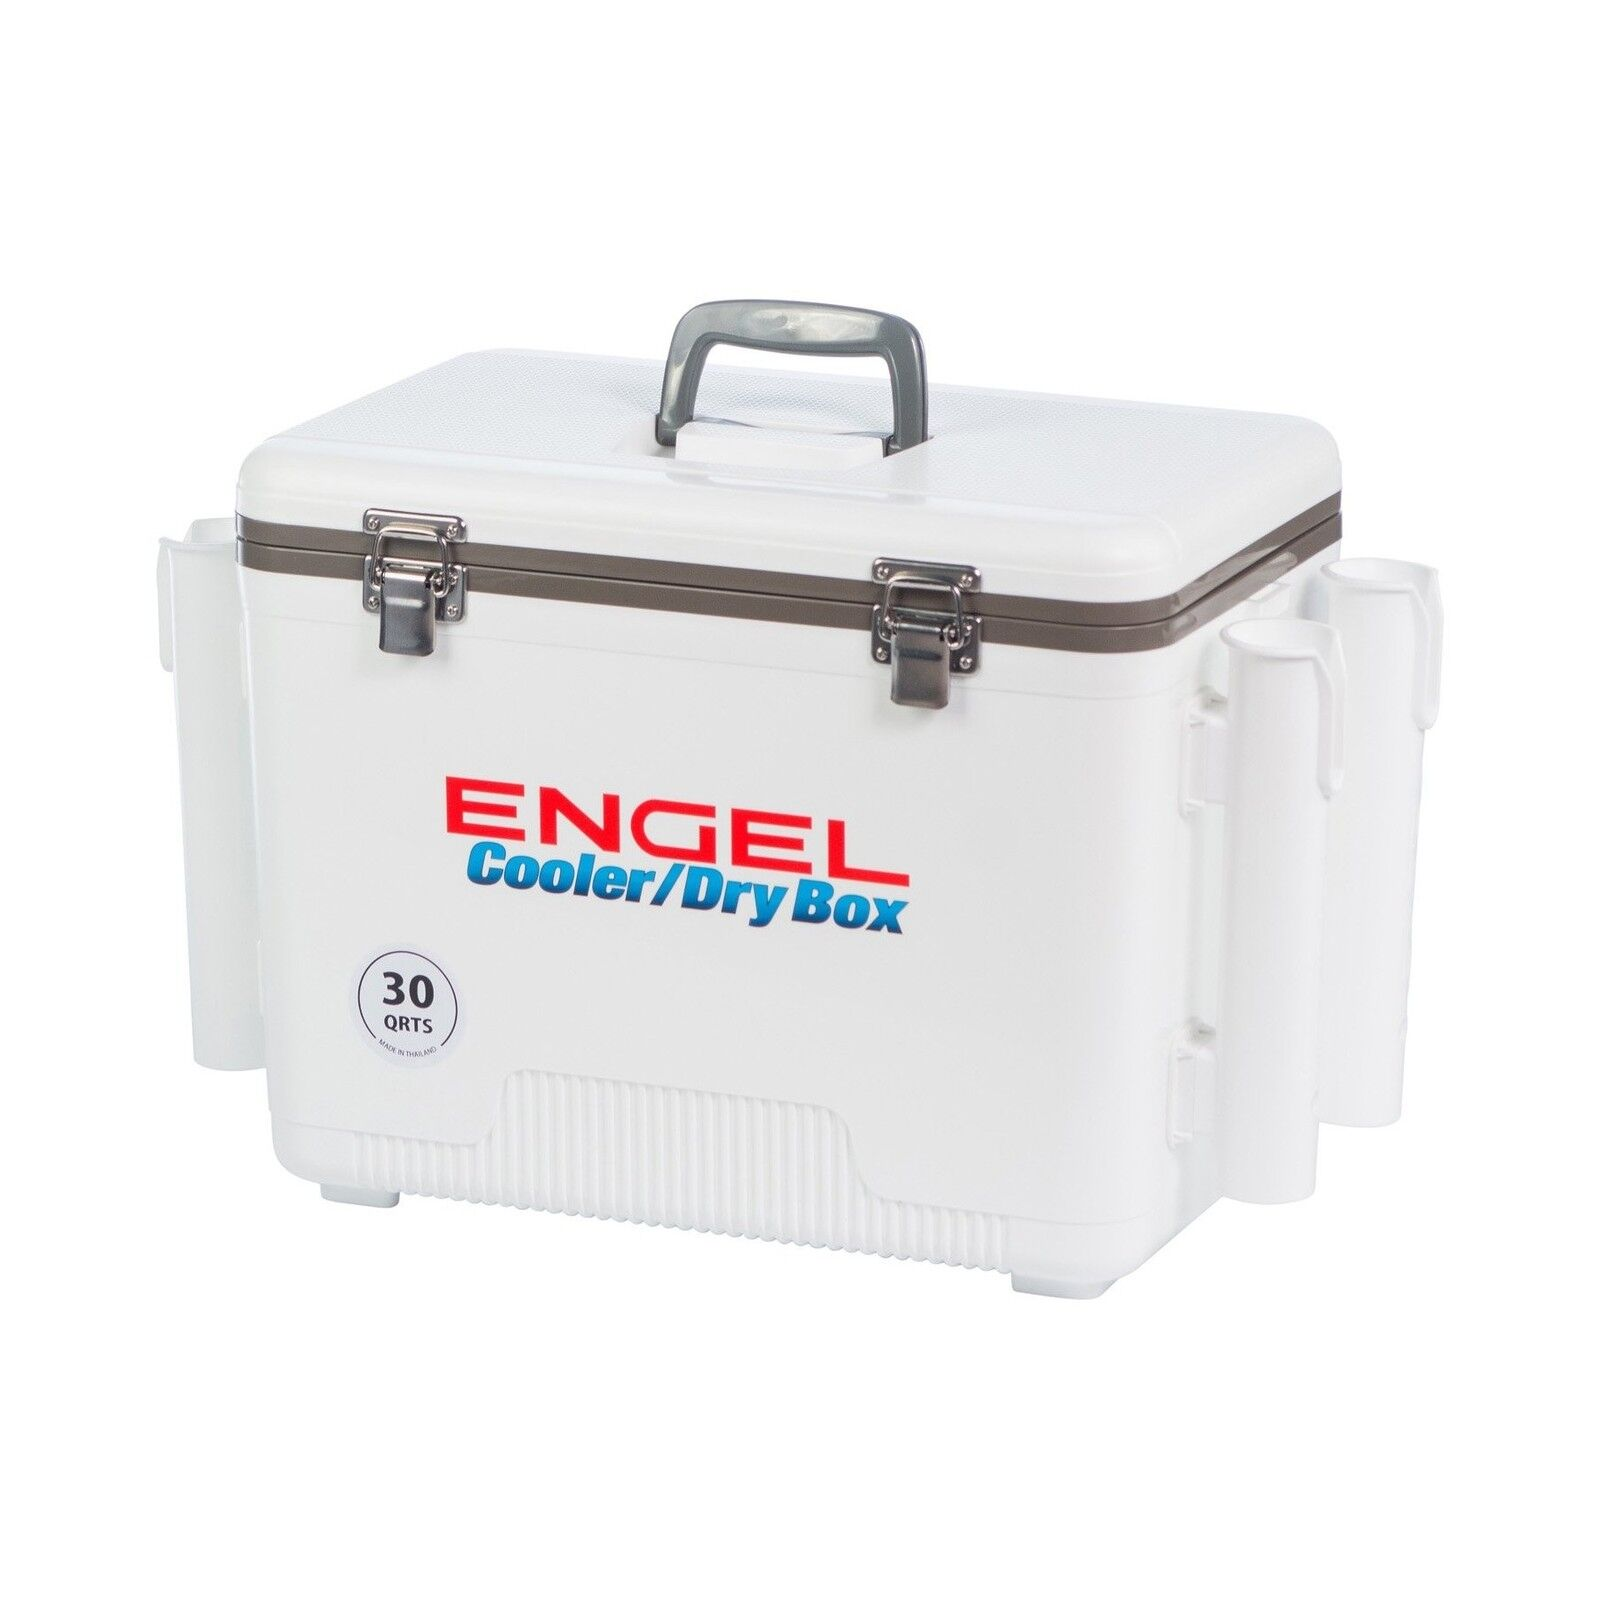 ENGEL USA Cooler Dry Box 30 Quart White with 4 Rod Holders Free Shipping